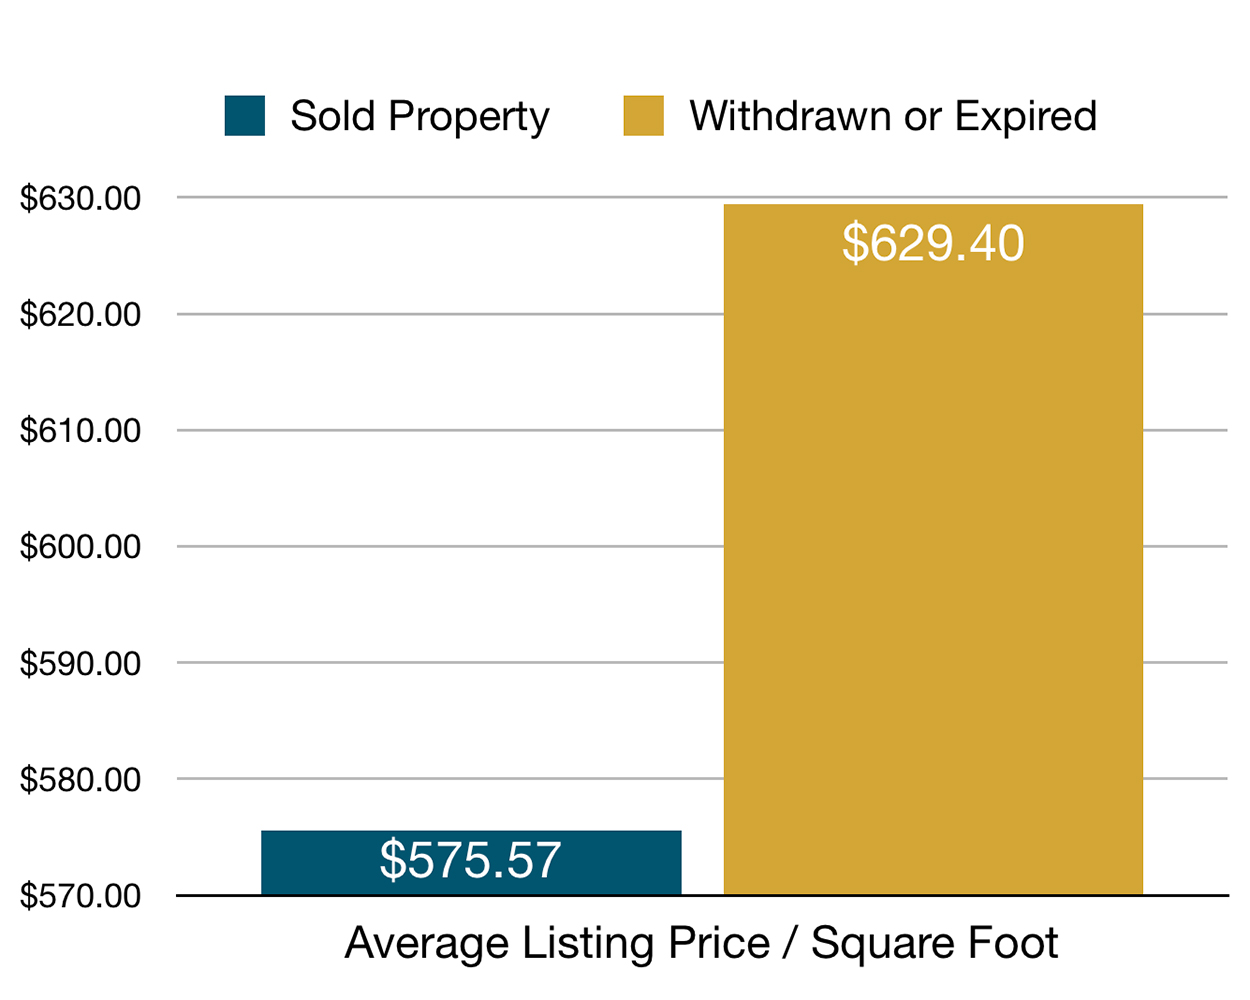 graph showing how selling price compared to list price decline the longer the property is on the market.